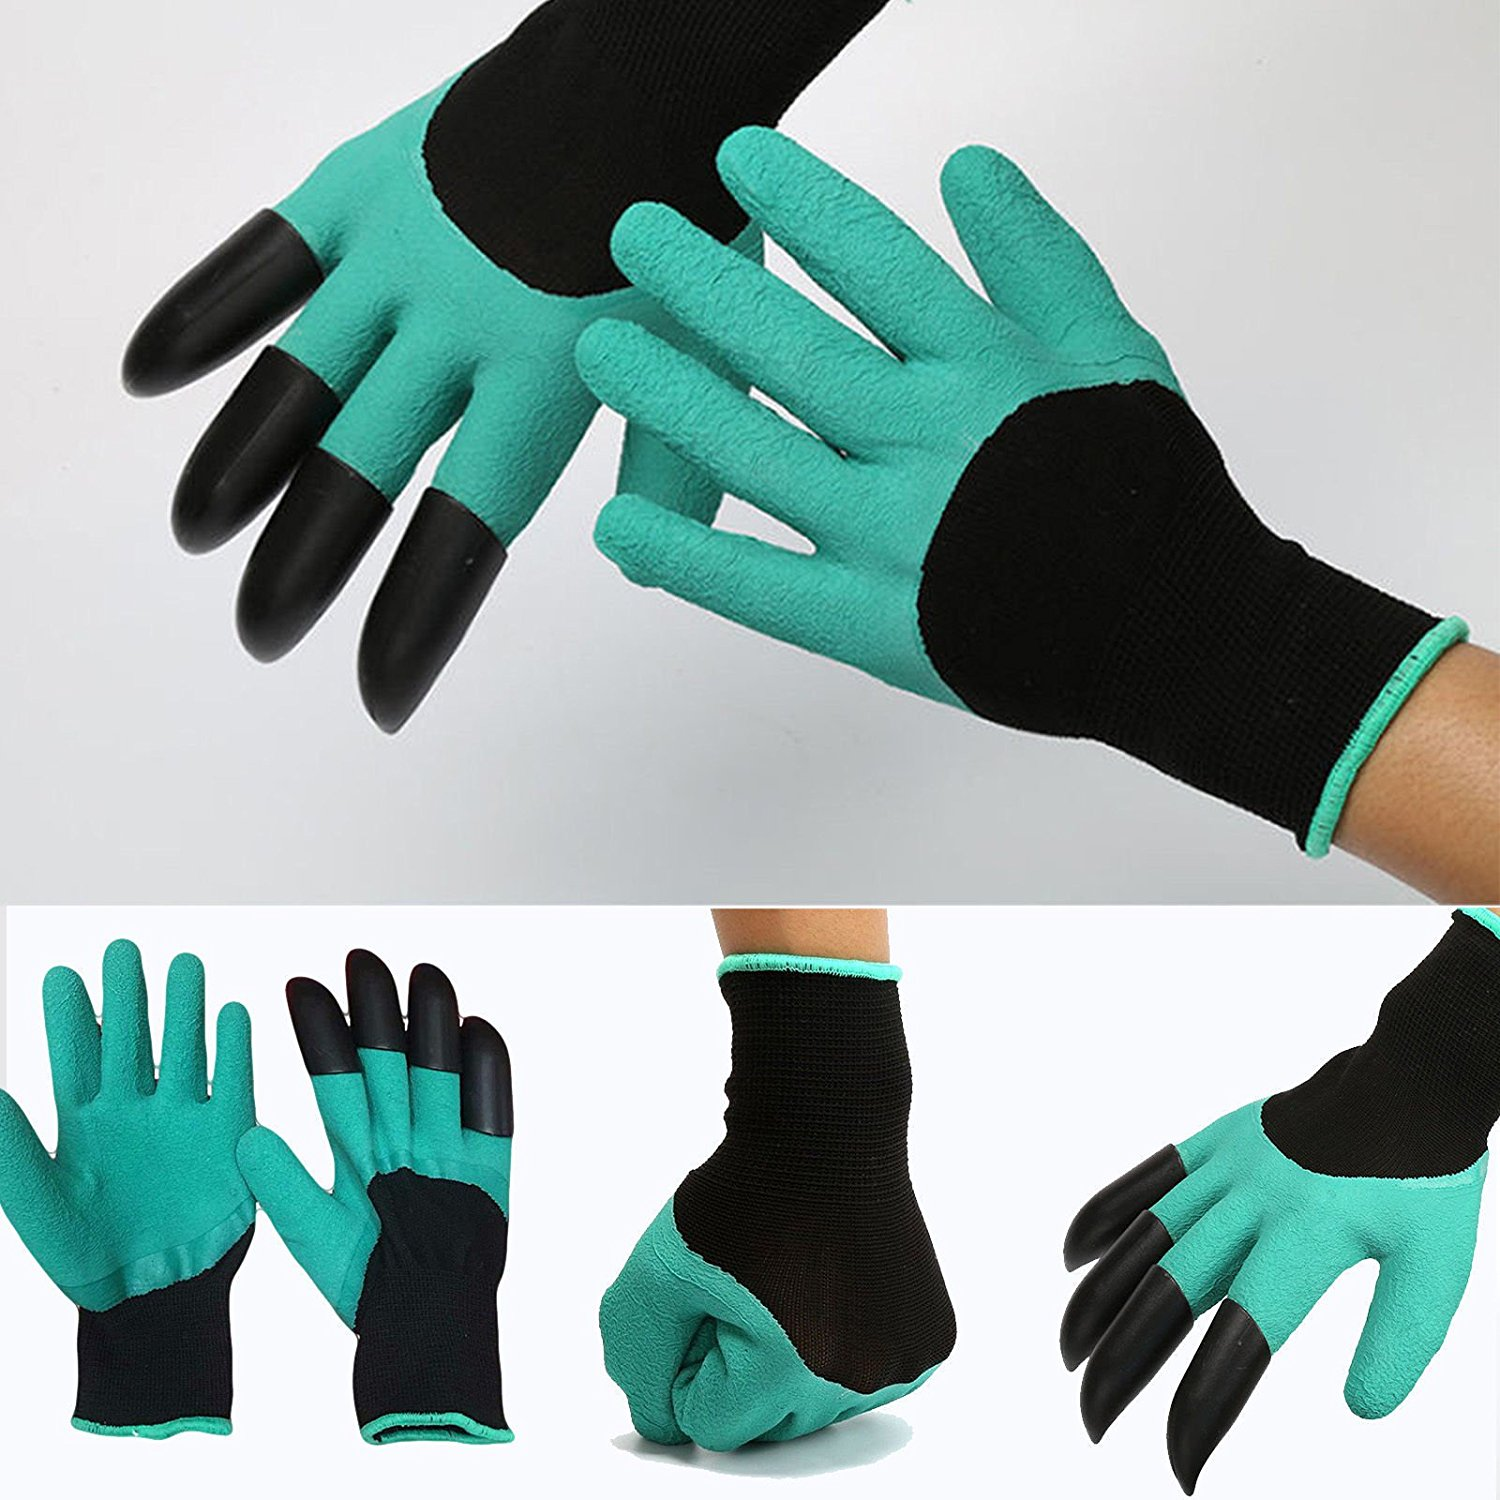 USA Genie Garden Gloves Digging&Planting with4 ABS Plastic Claws Gardeni